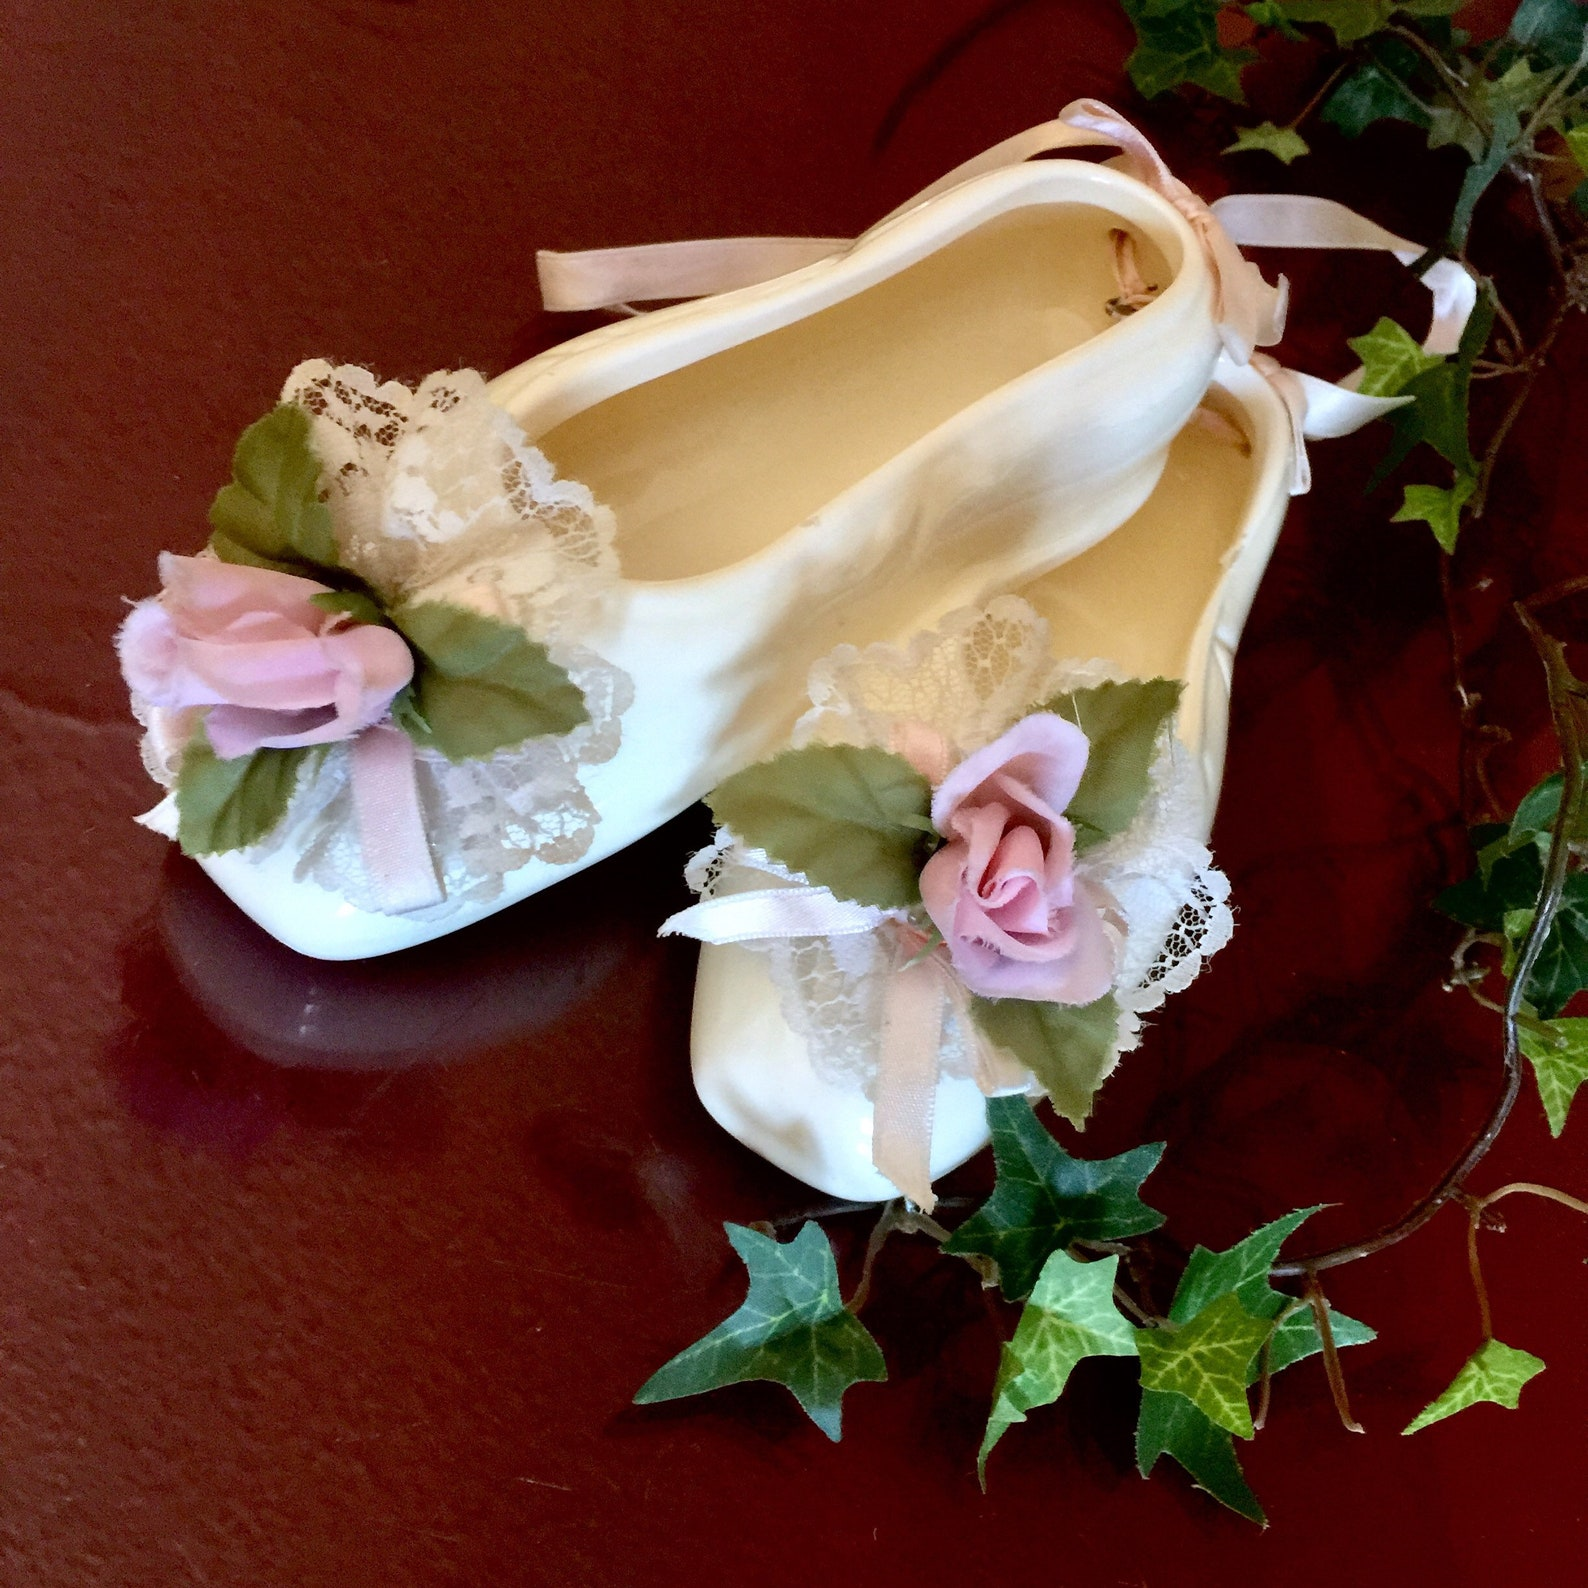 ballerina shoes ceramic rose lace victorian wall art decor ballet dance teacher gift birthday girl memorabilia pink ribbon hangi